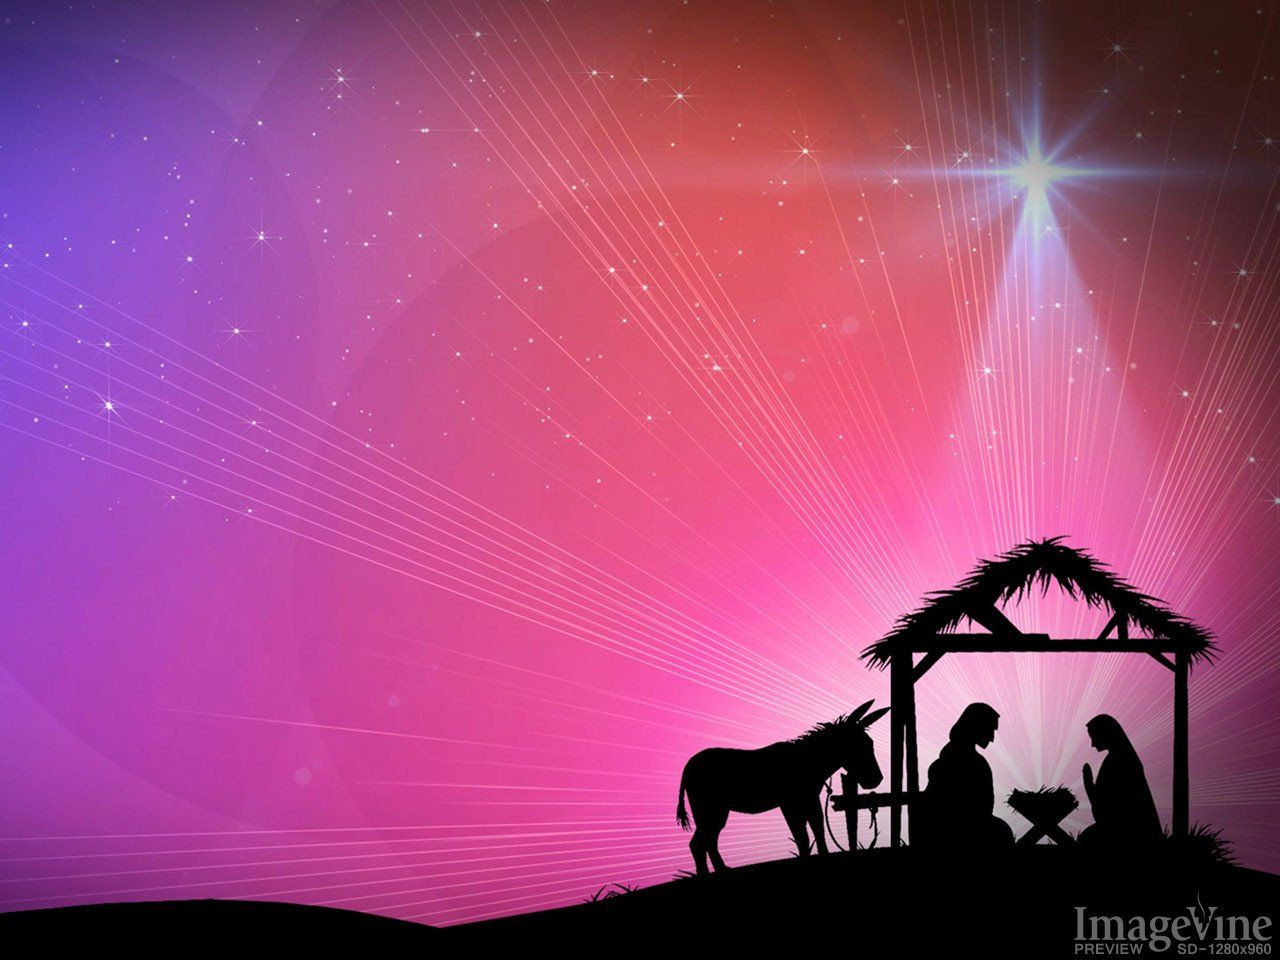 The Christmas Story Christmas powerpoint template, A